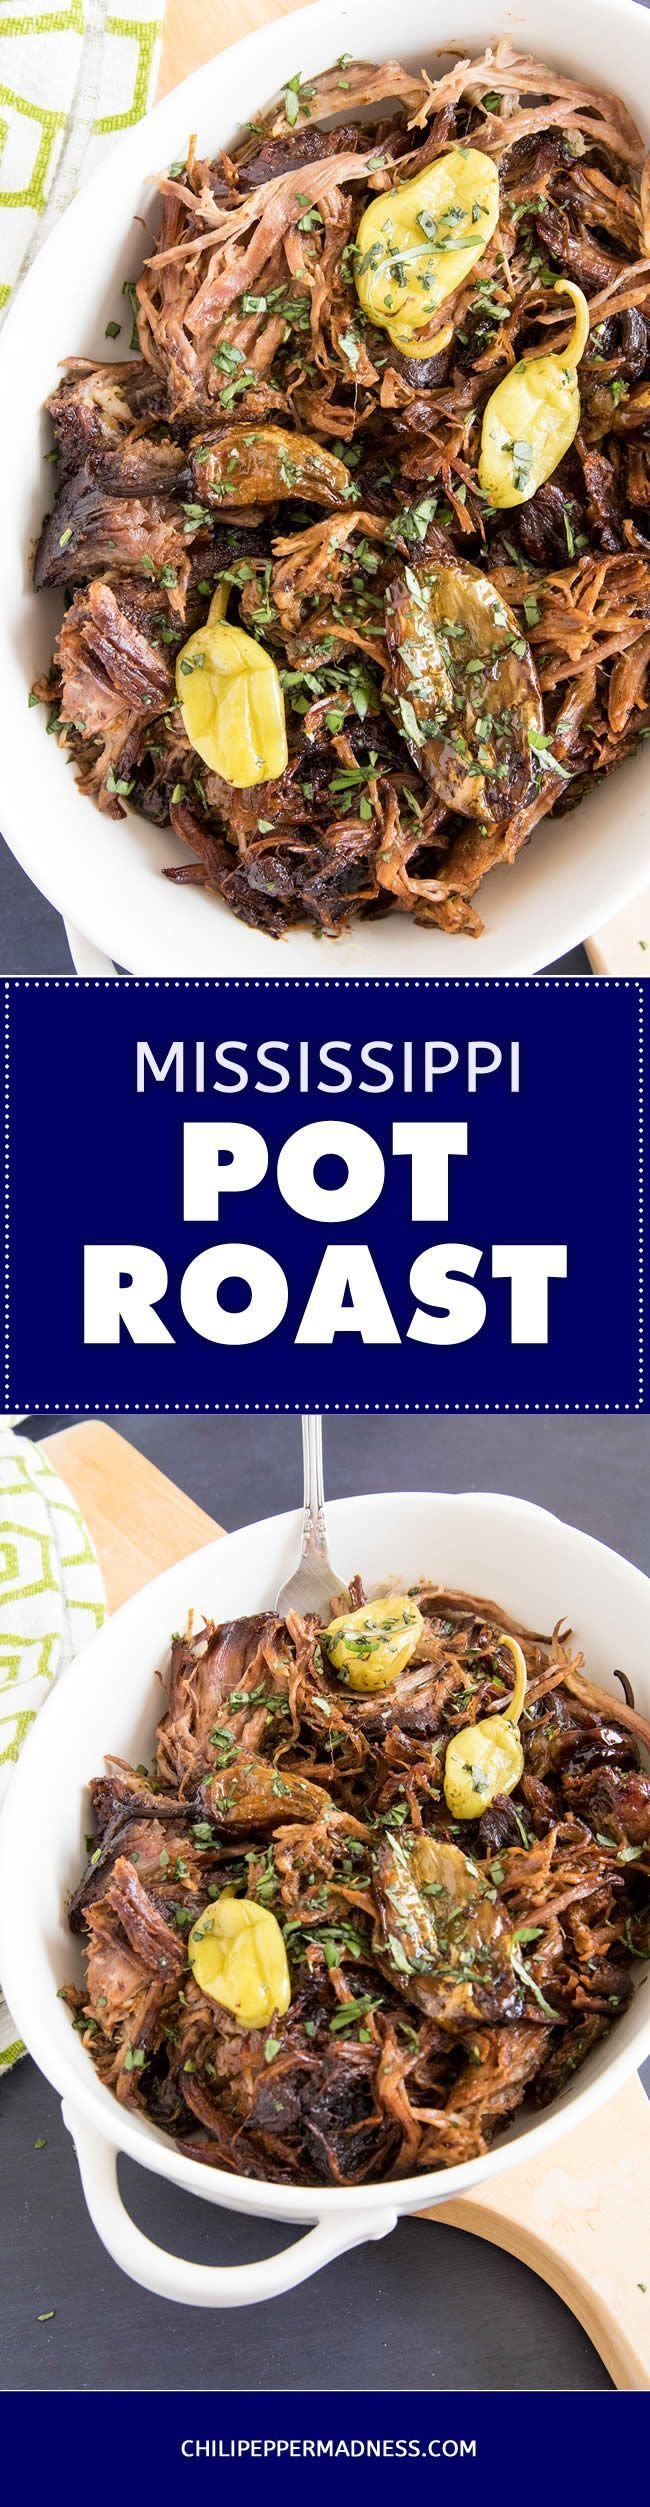 Famous Mississippi Pot Roast - A recipe for making the practically infamous slow cooker beef roast that took the Internet by storm! Delicious and fork tender, made with chuck roast, pepperoncinis and loads of seasonings.  #recipe #recipeoftheday #recipeideas #recipesharing #chilipeppermadness #spicyfood #spicylife #delish #tasty #foodblogeats #dinner #spicy #recipes #ilovecooking #feedfeed #buzzfeast #cookit #thekitchn